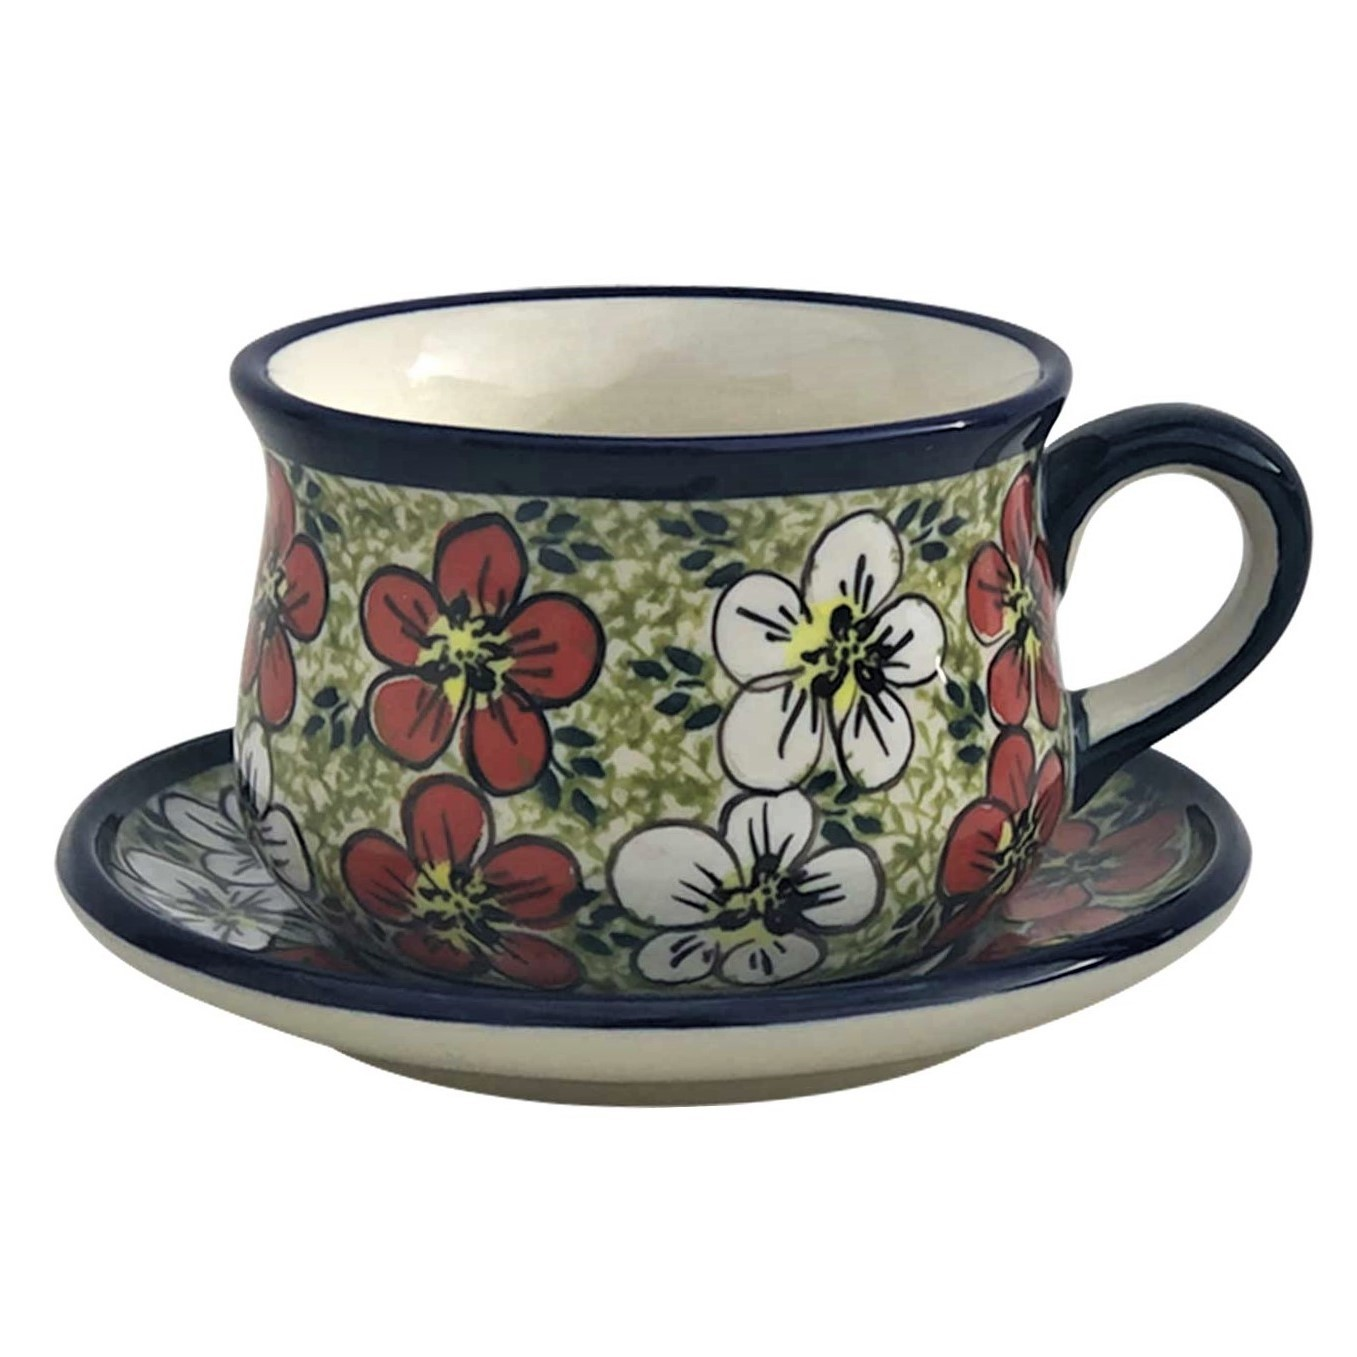 Pottery Avenue 6.7-oz Stoneware Cup & Saucer Set - 1595-1596-331AR Red Bacopa